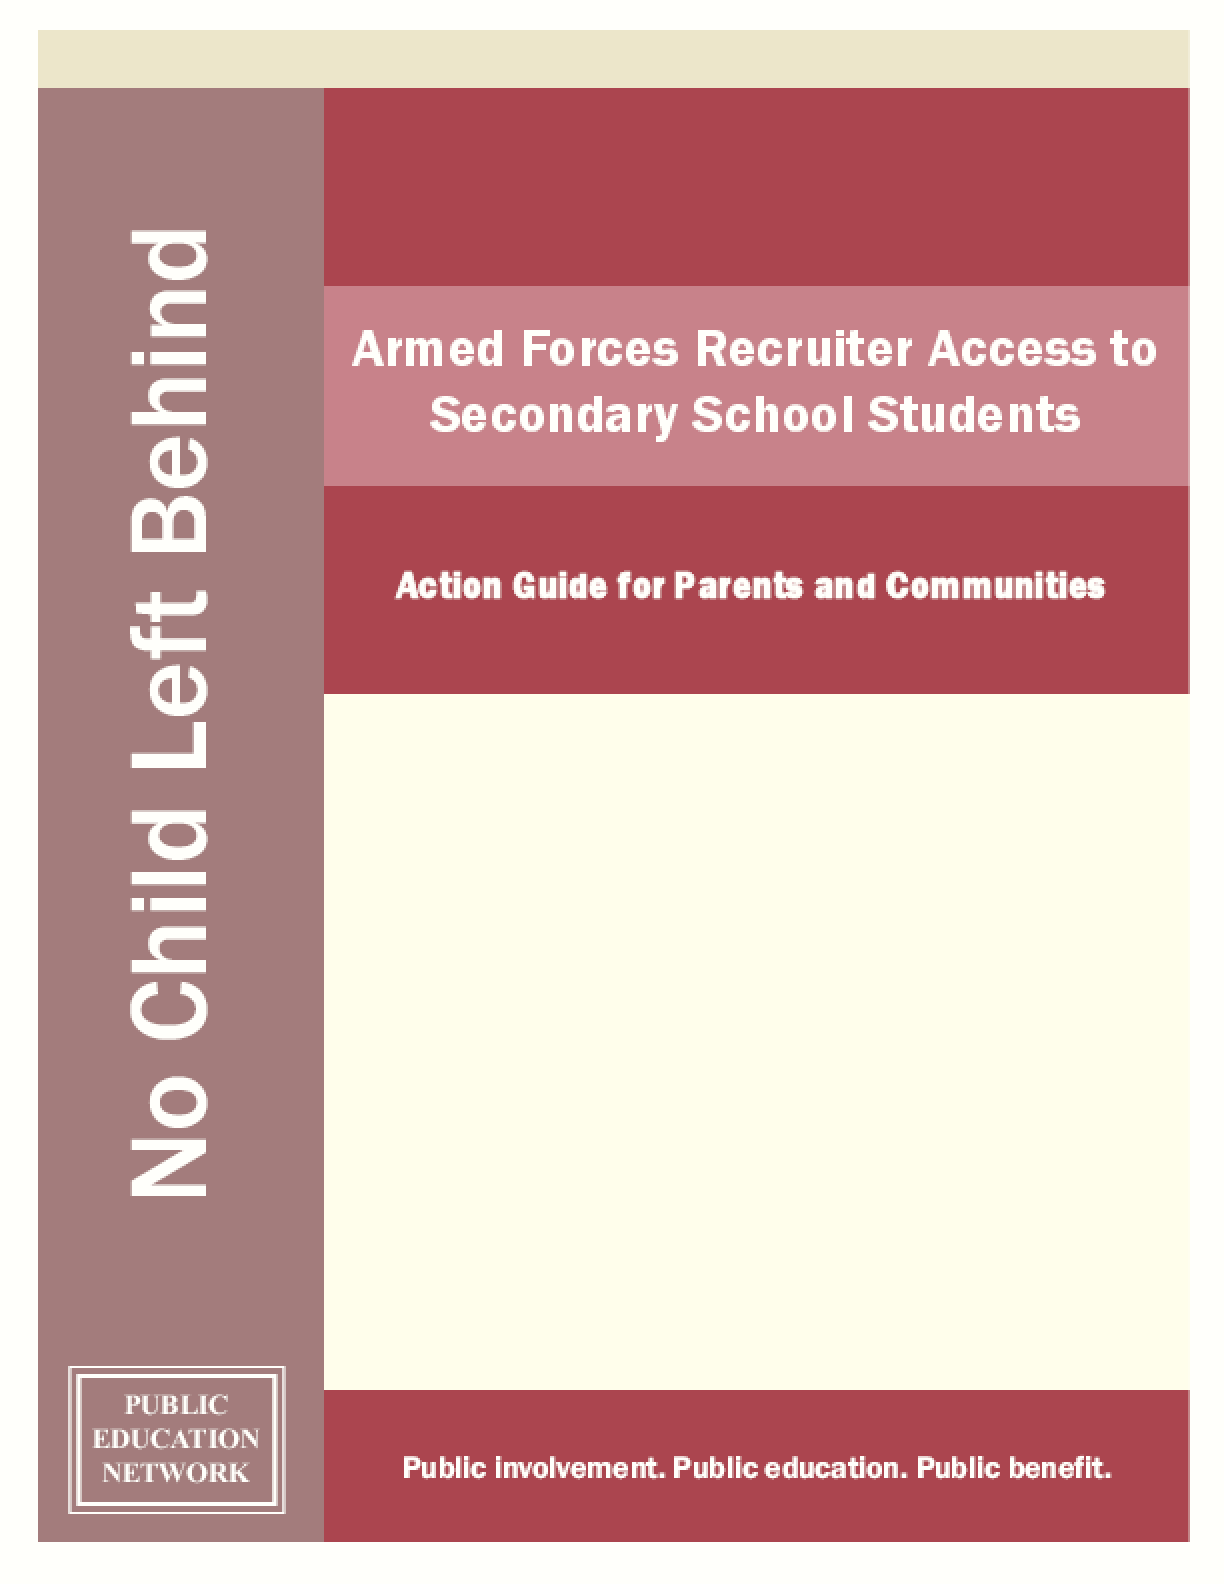 Armed Forces Recruiter Access to Secondary School Students: Action Guide for Parents and Communities